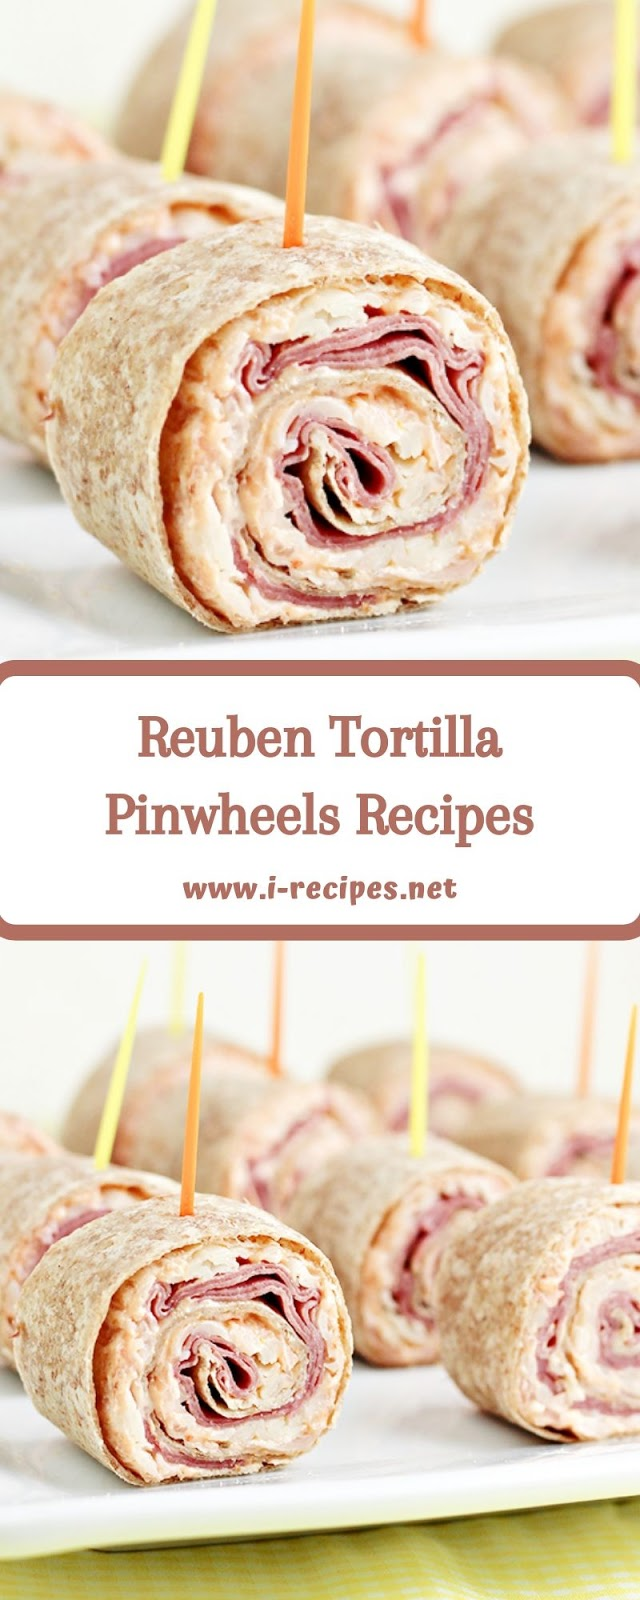 Reuben Tortilla Pinwheels Recipes